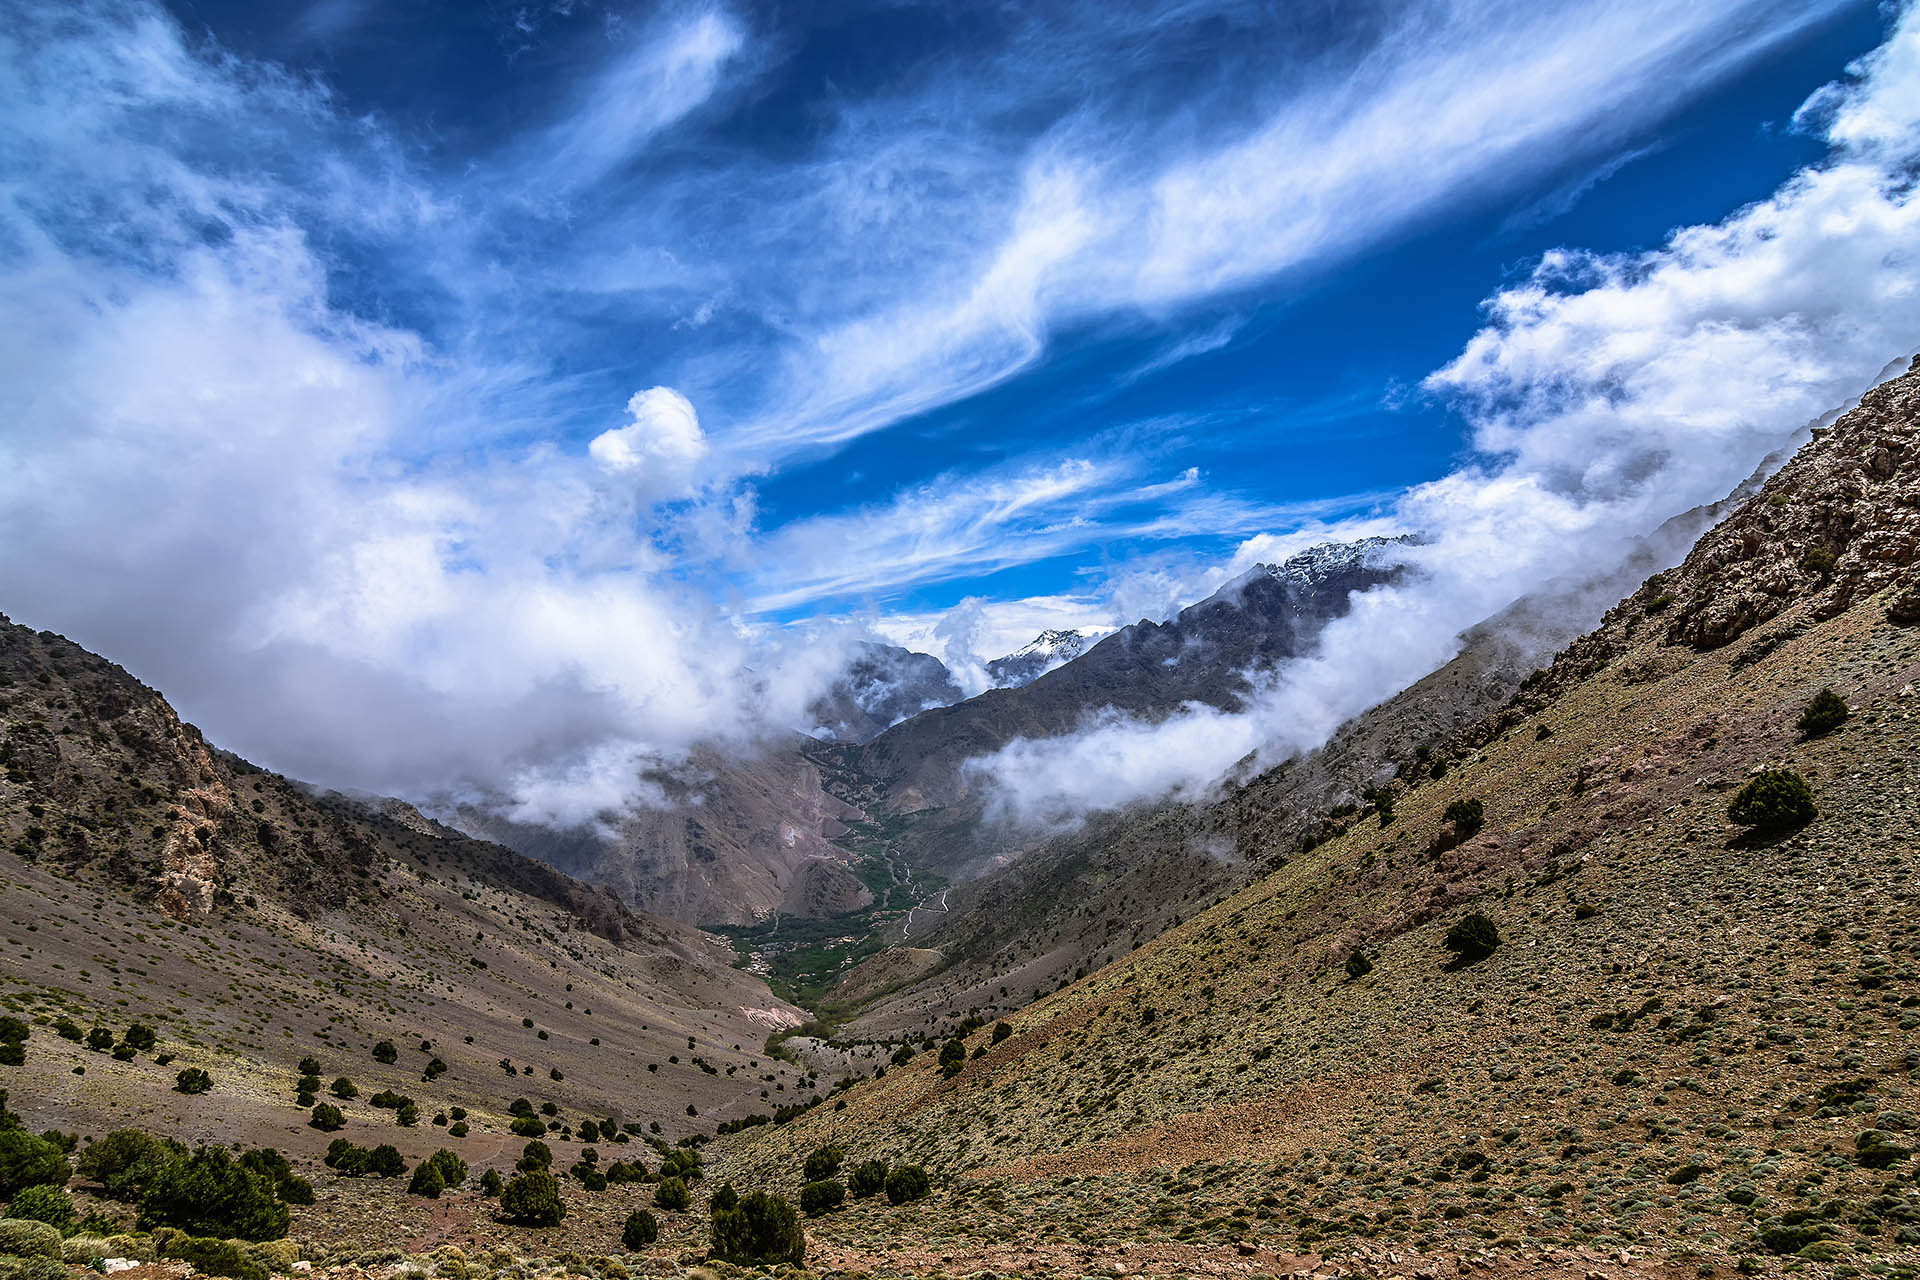 Tizi N'Mzik, Tizi N'Mezzik, Imlil Valley, High Atlas Mountains, Morocco